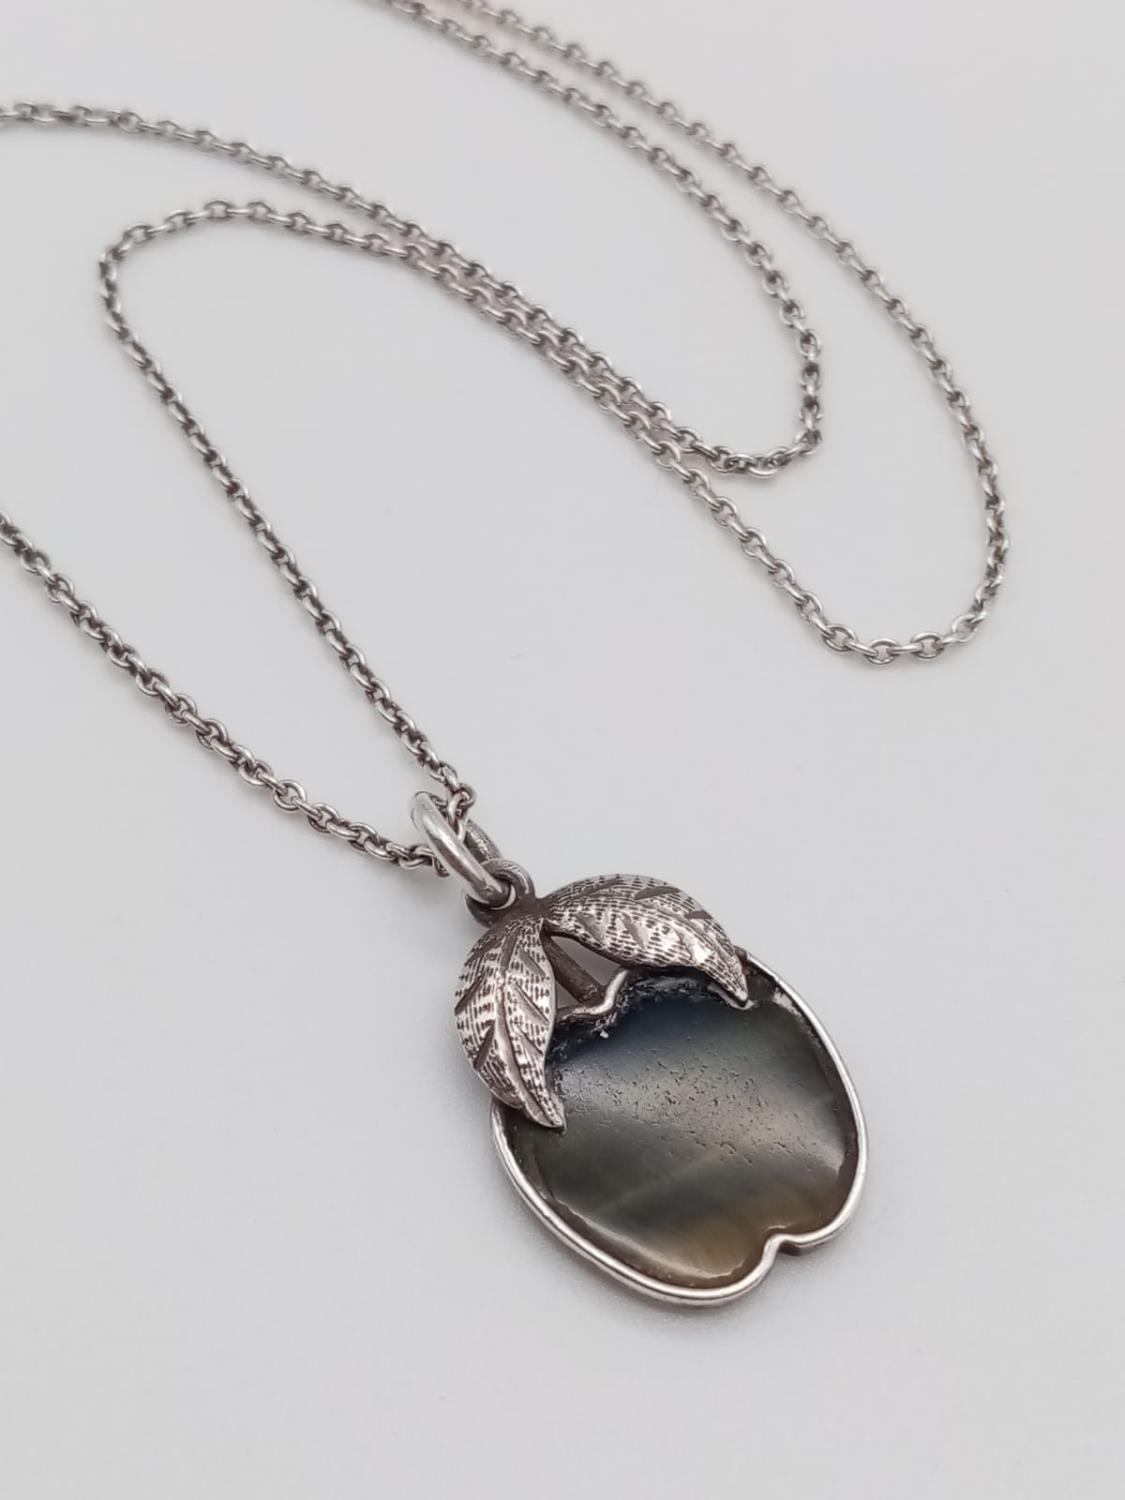 Vintage sterling silver apple pendant necklace in box - Image 2 of 7